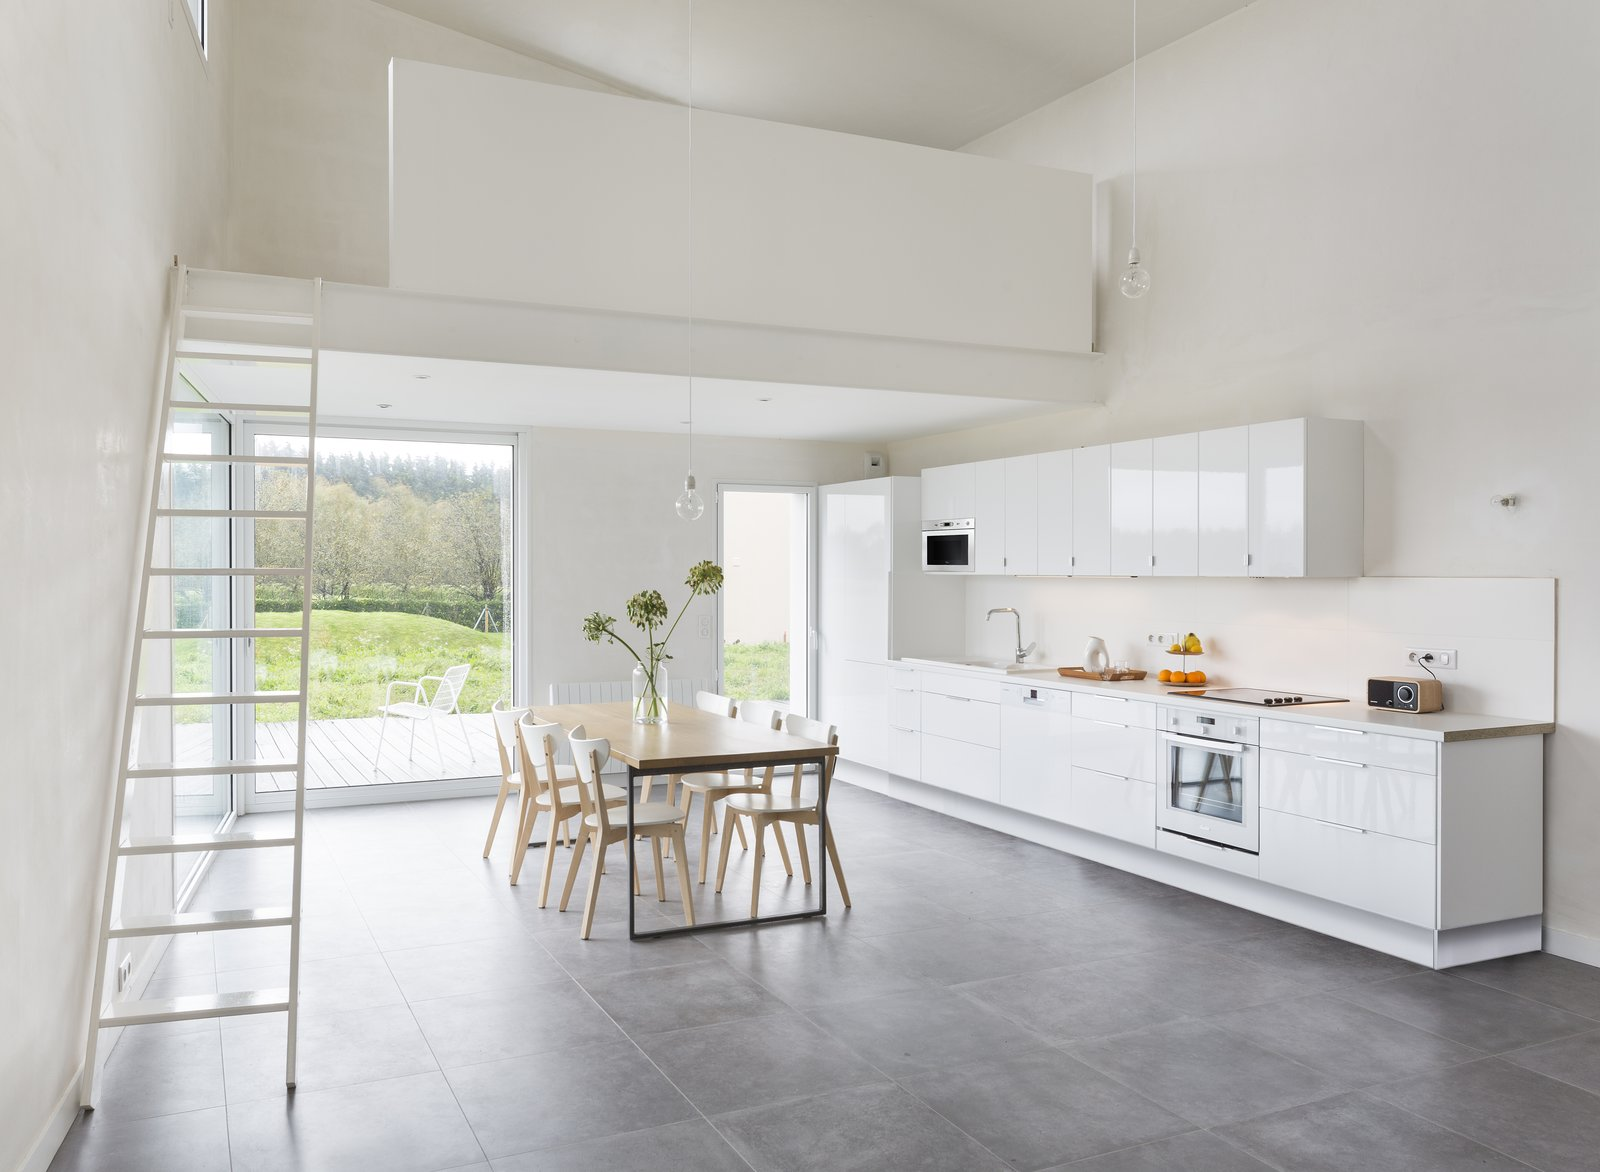 A sleek, minimal kitchen with lacquered MDF cabinets provides a glossy contrast to the unpainted walls.  Photo 6 of 10 in Framing the Landscape and Capturing Light, a Photographer's Home and Studio Echoes His Work